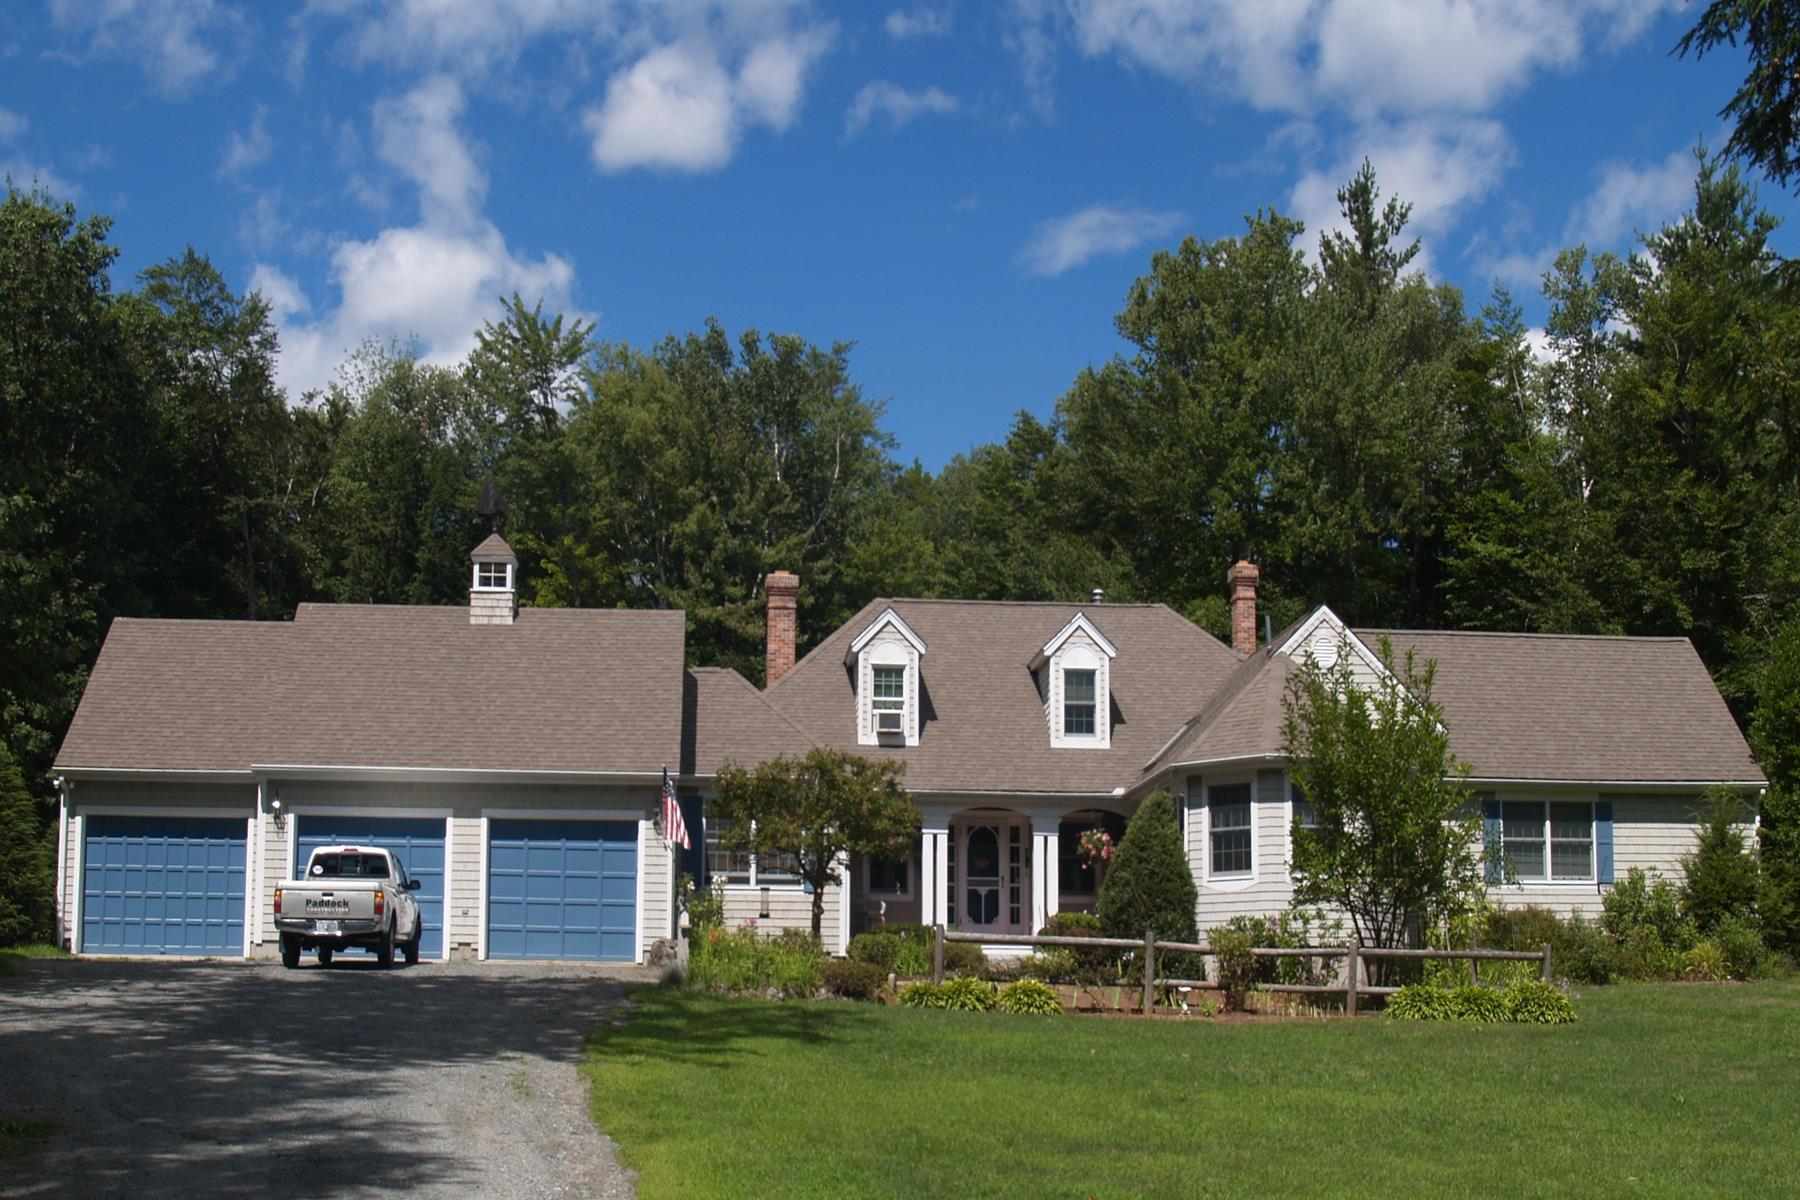 Villa per Vendita alle ore 39 South Brook Circle, Newbury Newbury, New Hampshire, 03255 Stati Uniti